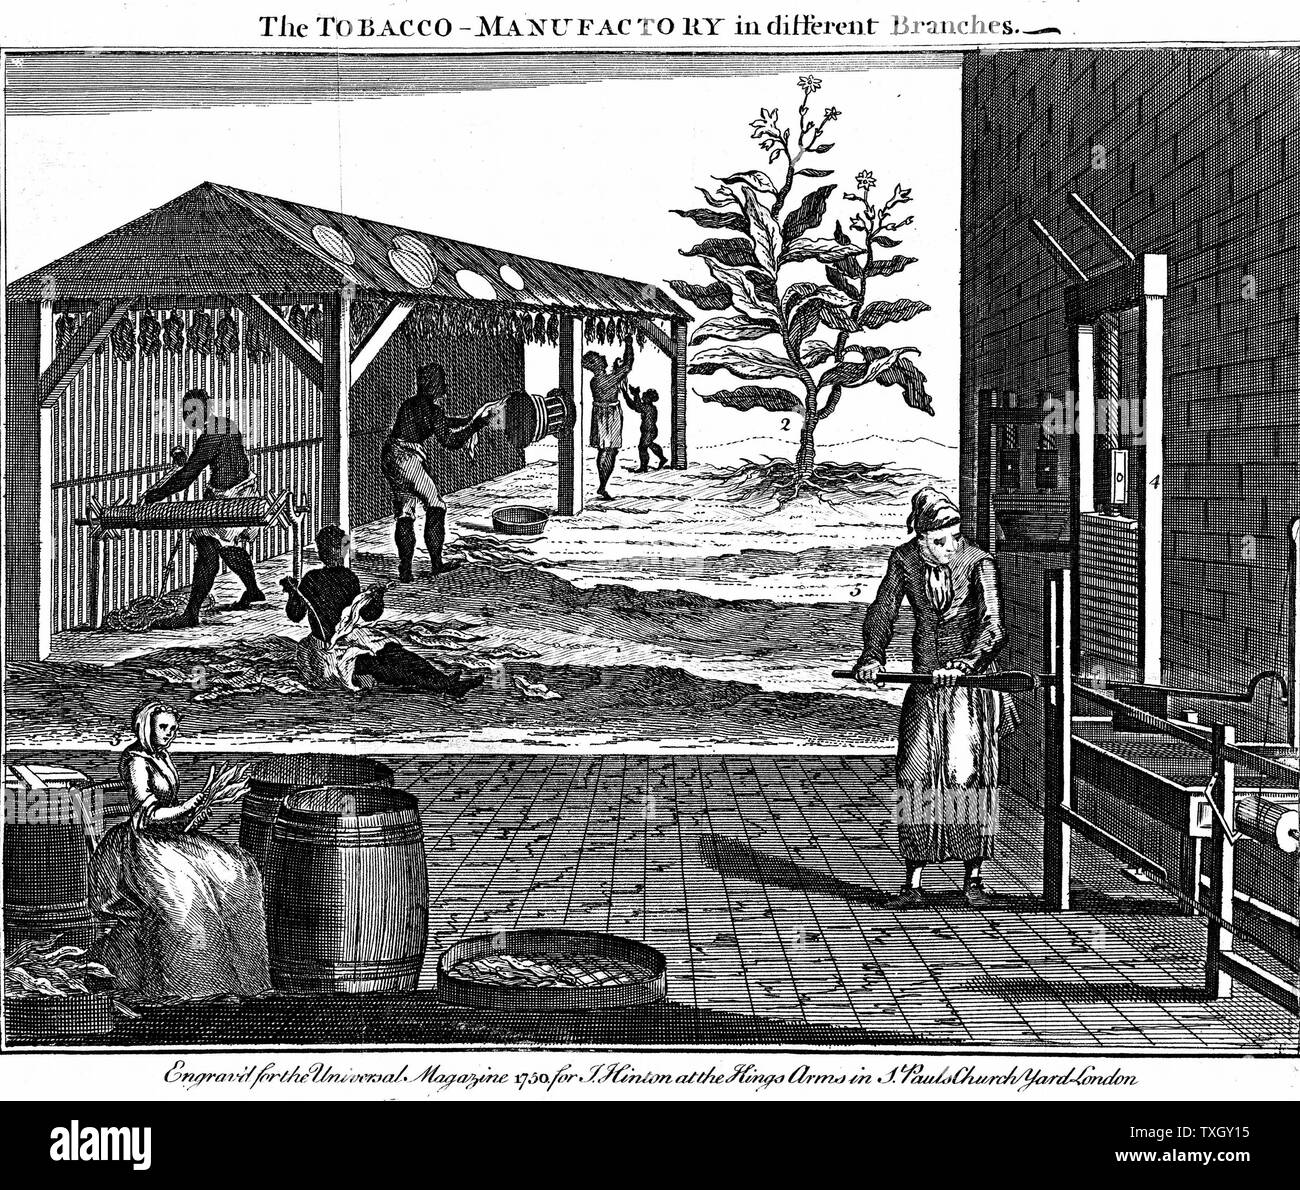 Various stages in the production of tobacco, Virginia.  Male, female and child slaves rolling dried tobacco into ropes, background.  Foreground, sorting leaves and pressing tobacco. Tobacco plant (nicotiana tabacum) at 2 1750 Copperplate engraving London - Stock Image